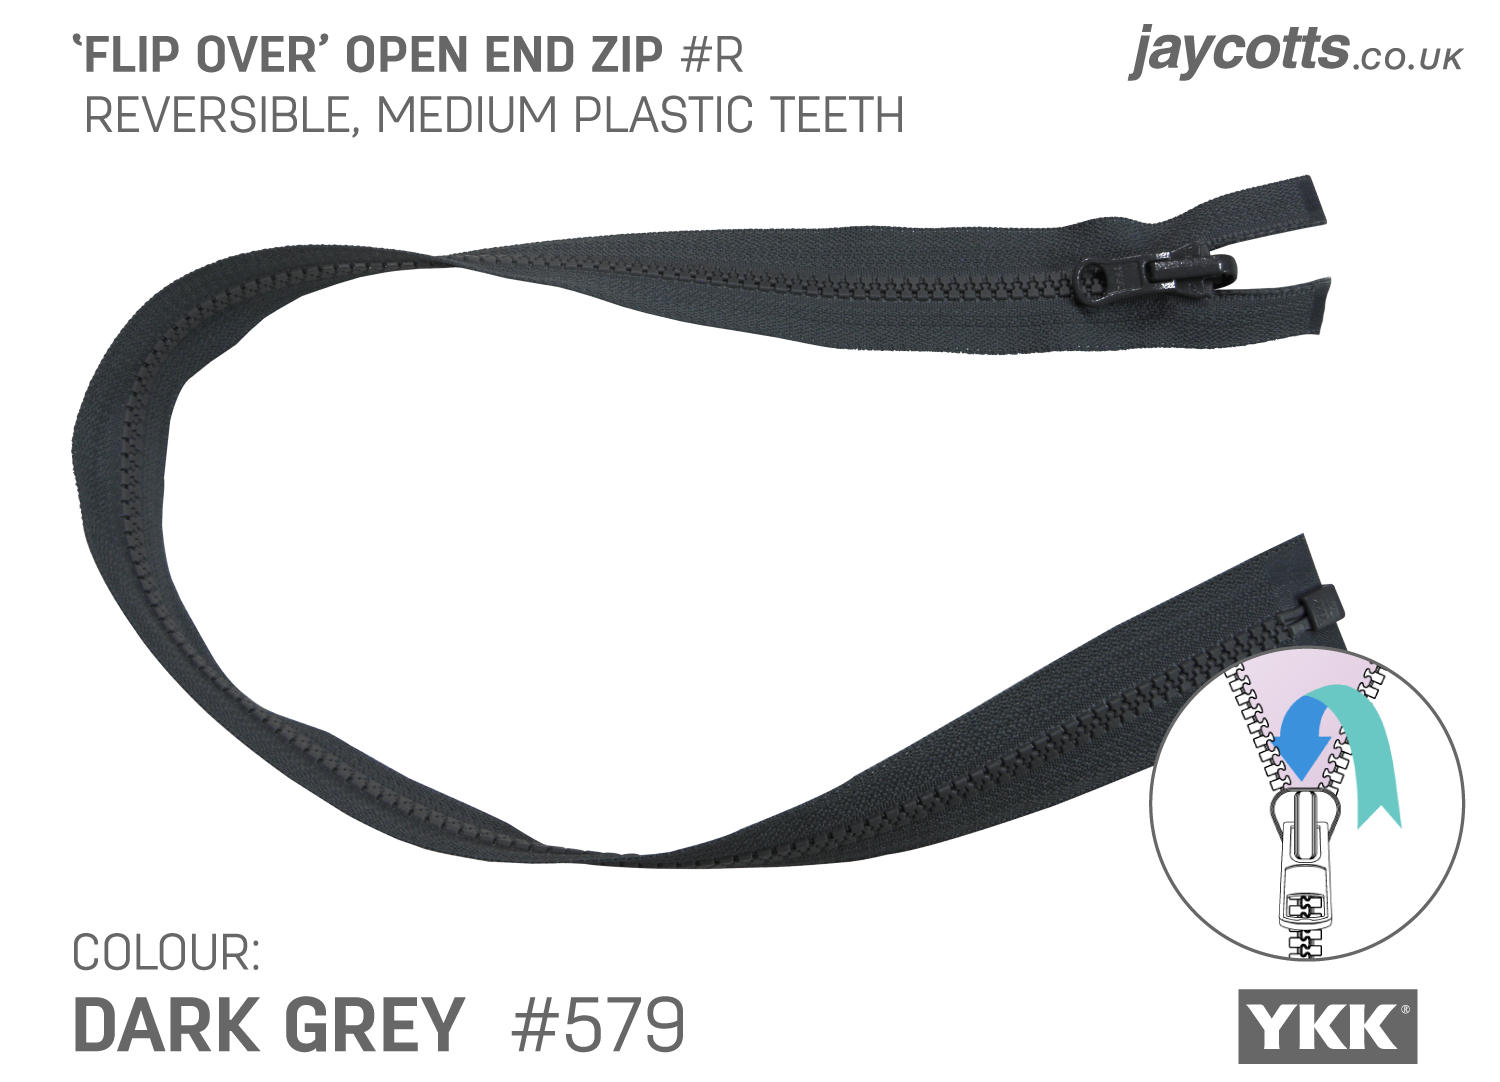 Reversible Open End Zip - Medium Plastic Teeth